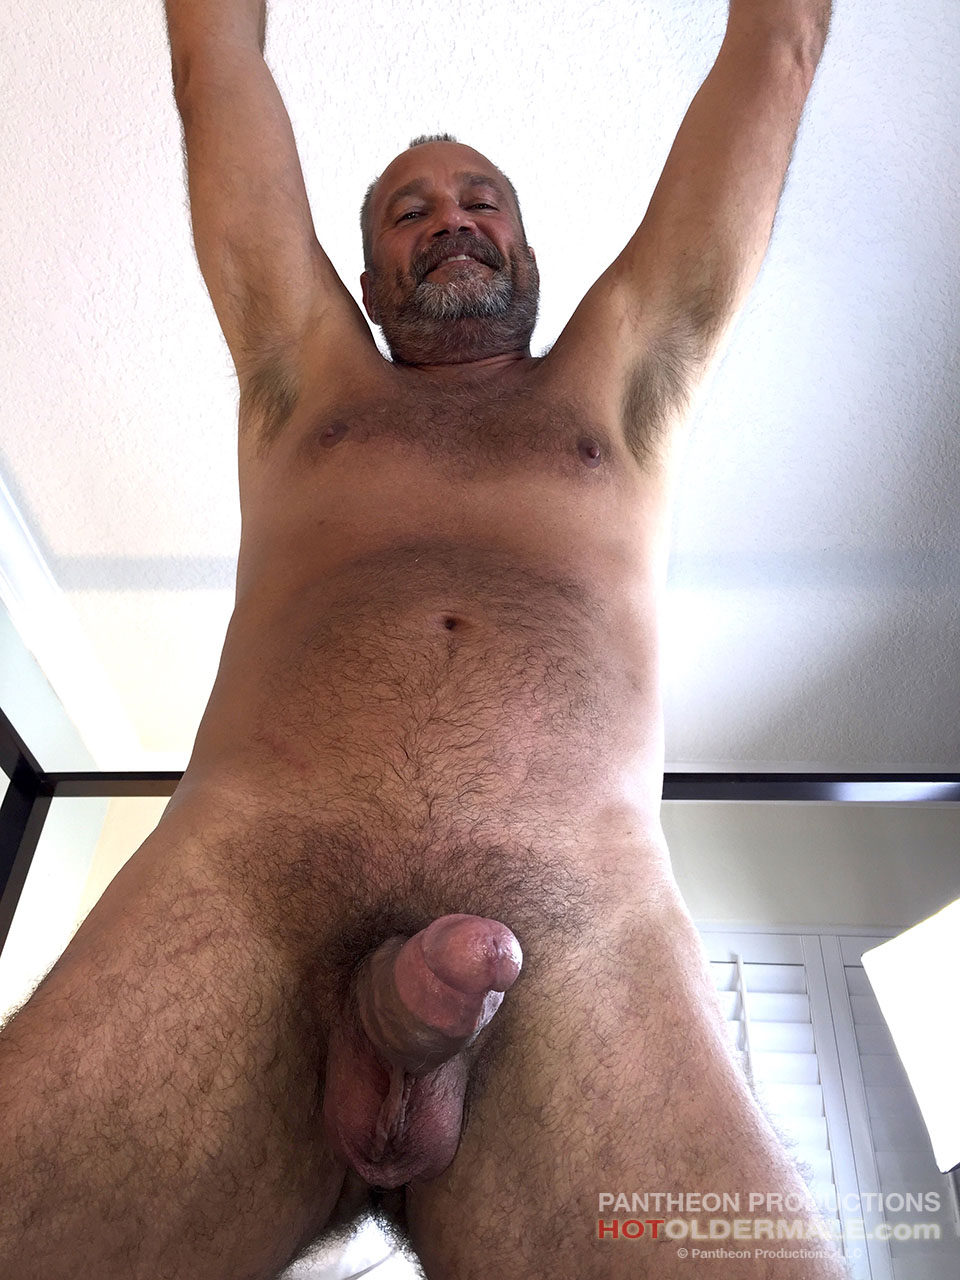 Watch Meat Market gay porn videos for free